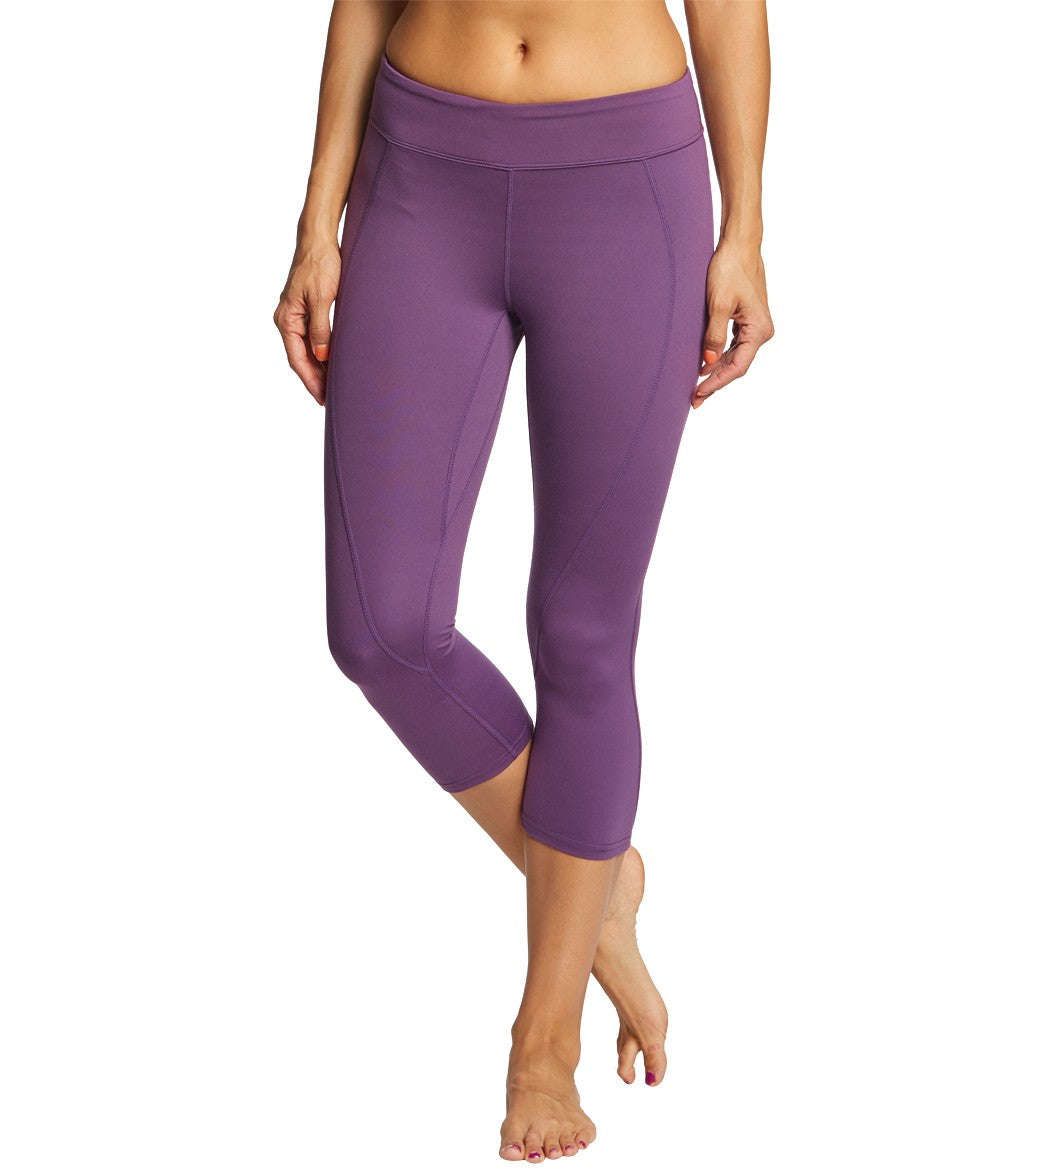 3a211e3876ed4f Soybu Commando Yoga Capris at YogaOutlet.com